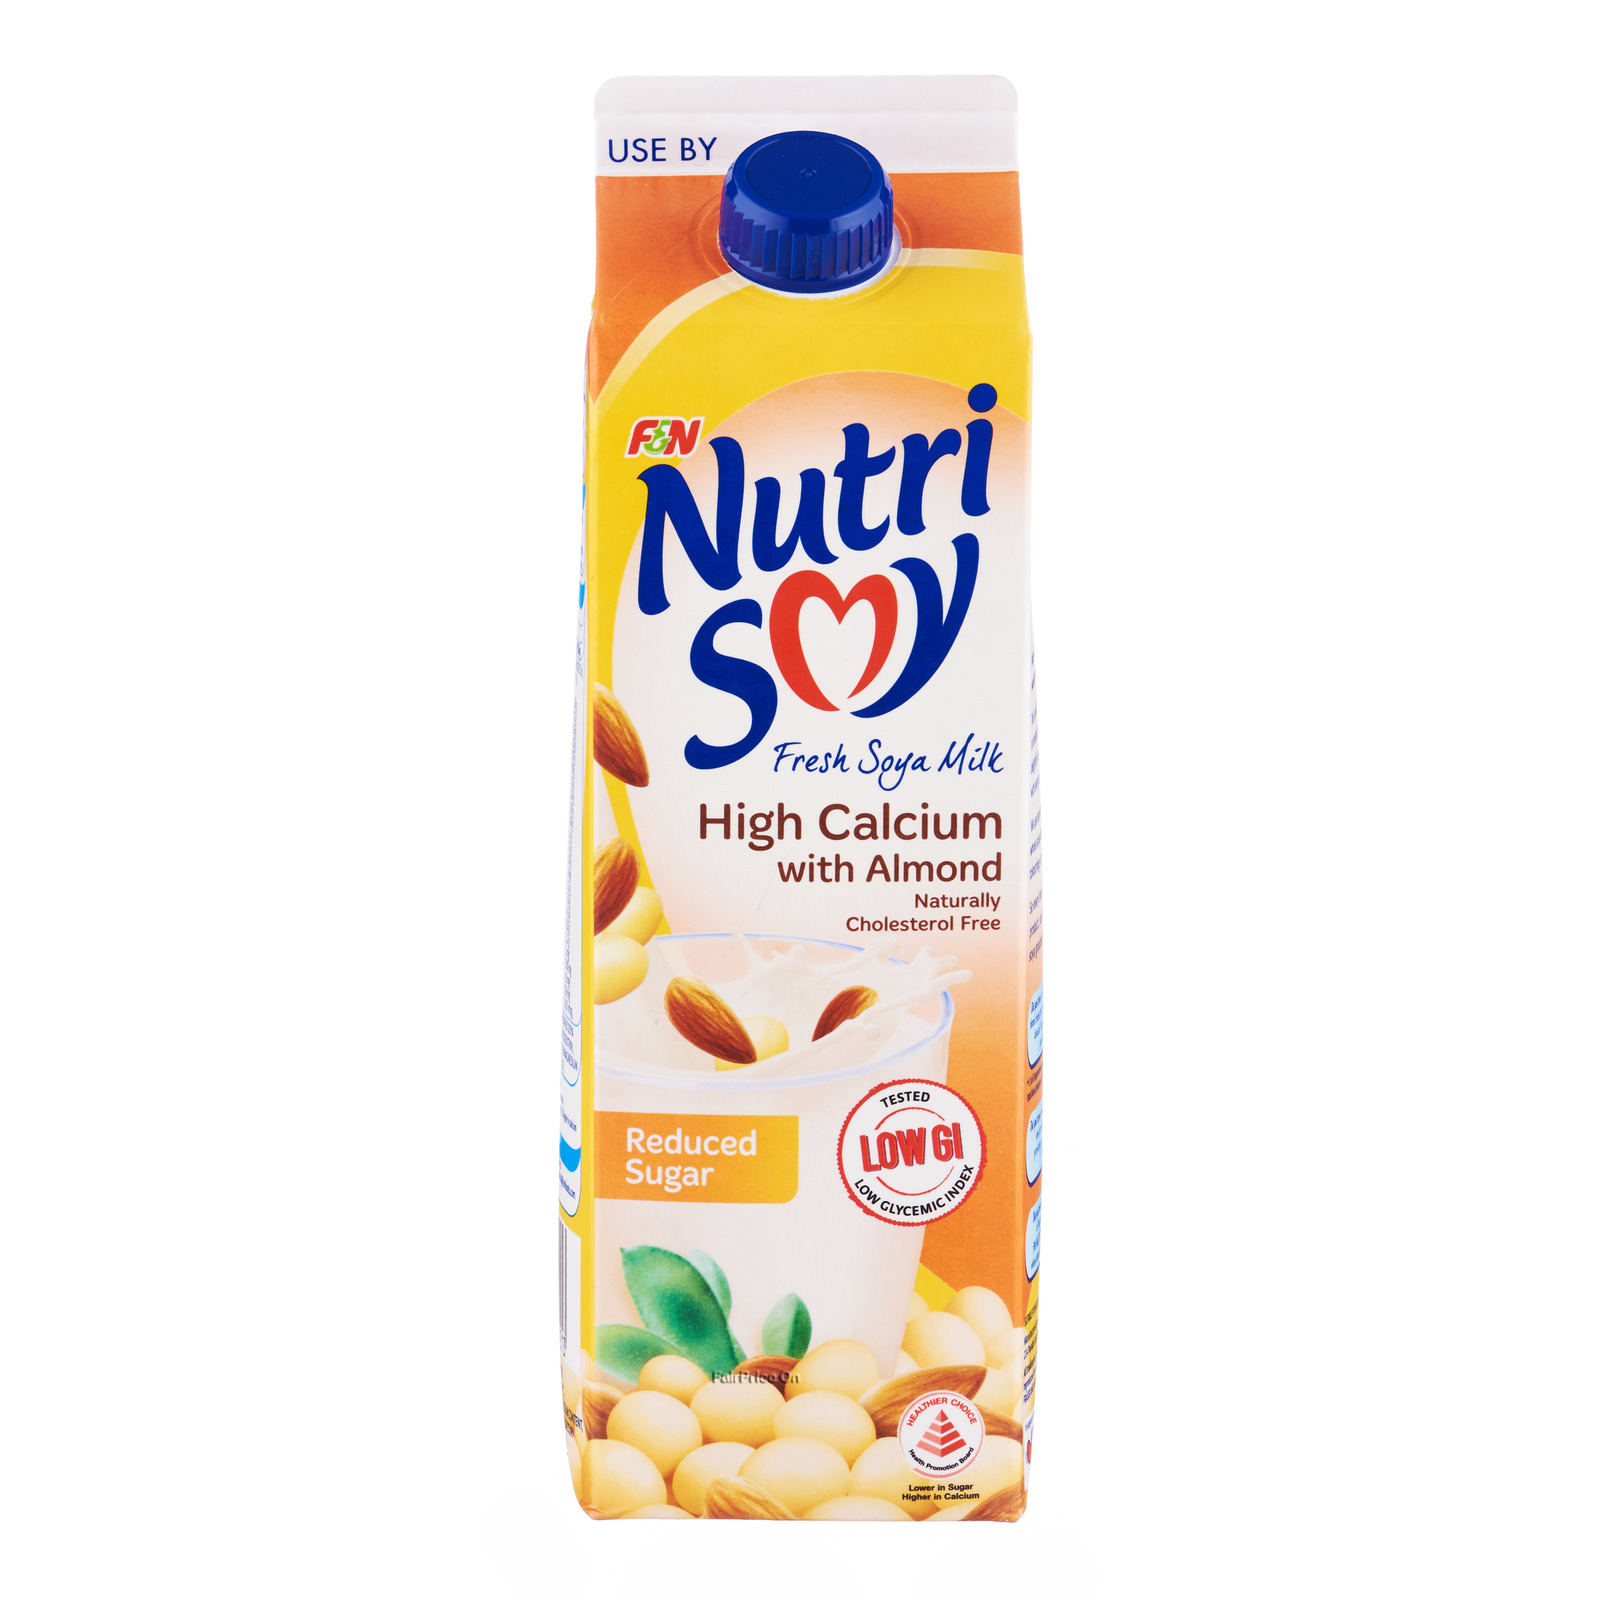 F&N NutriSoy High Calcium Fresh Soya Milk - Almond (Reduced Sugar)